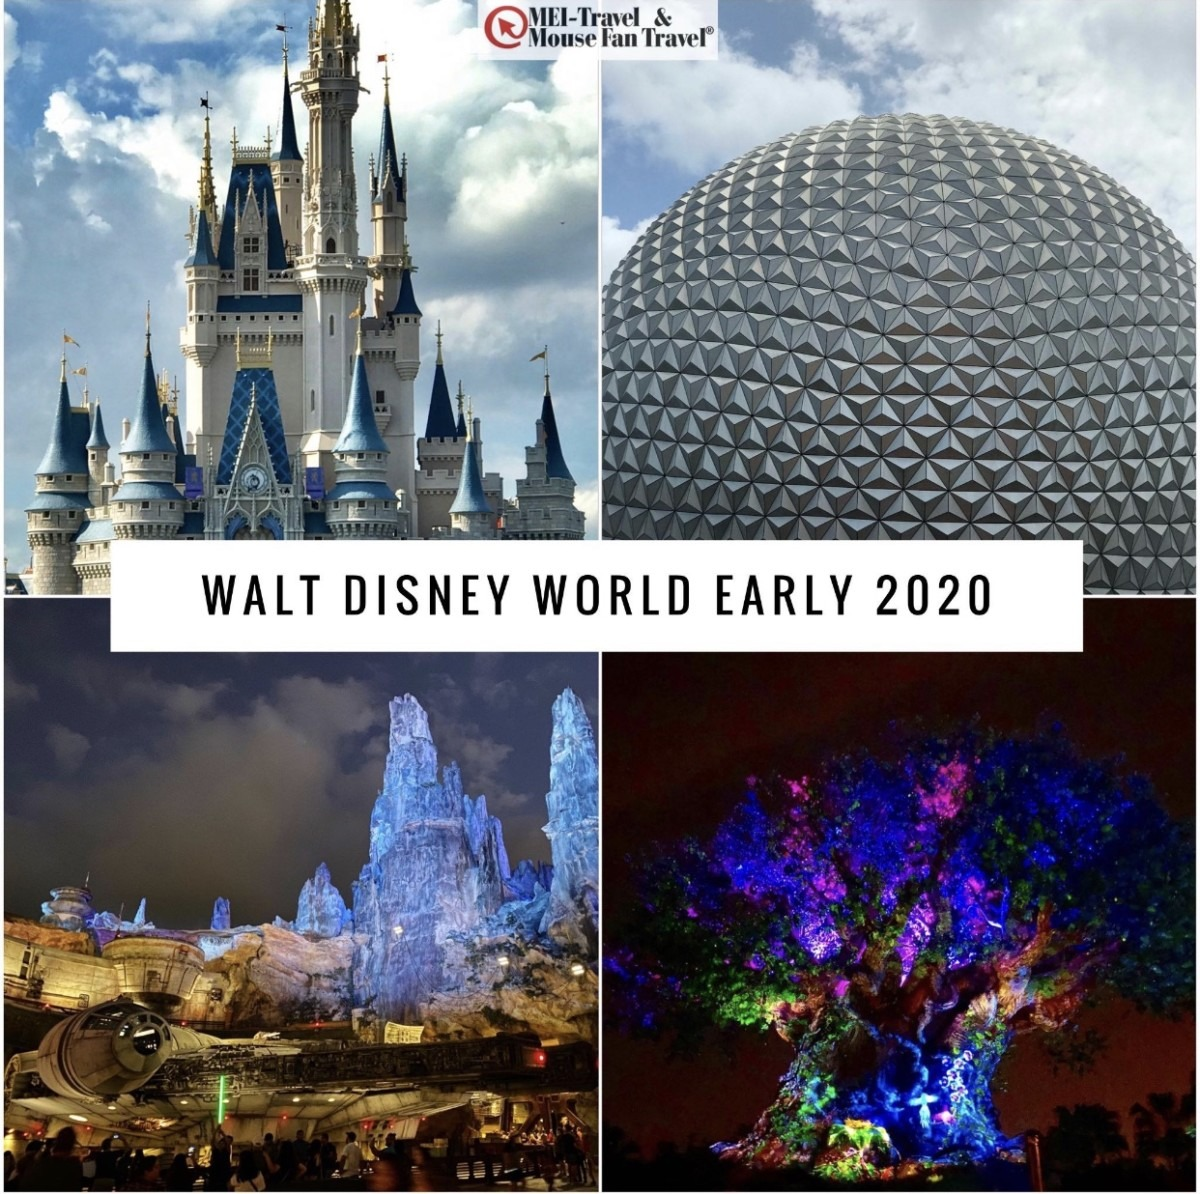 Walt Disney World Early 2020 Offers are Here! 2